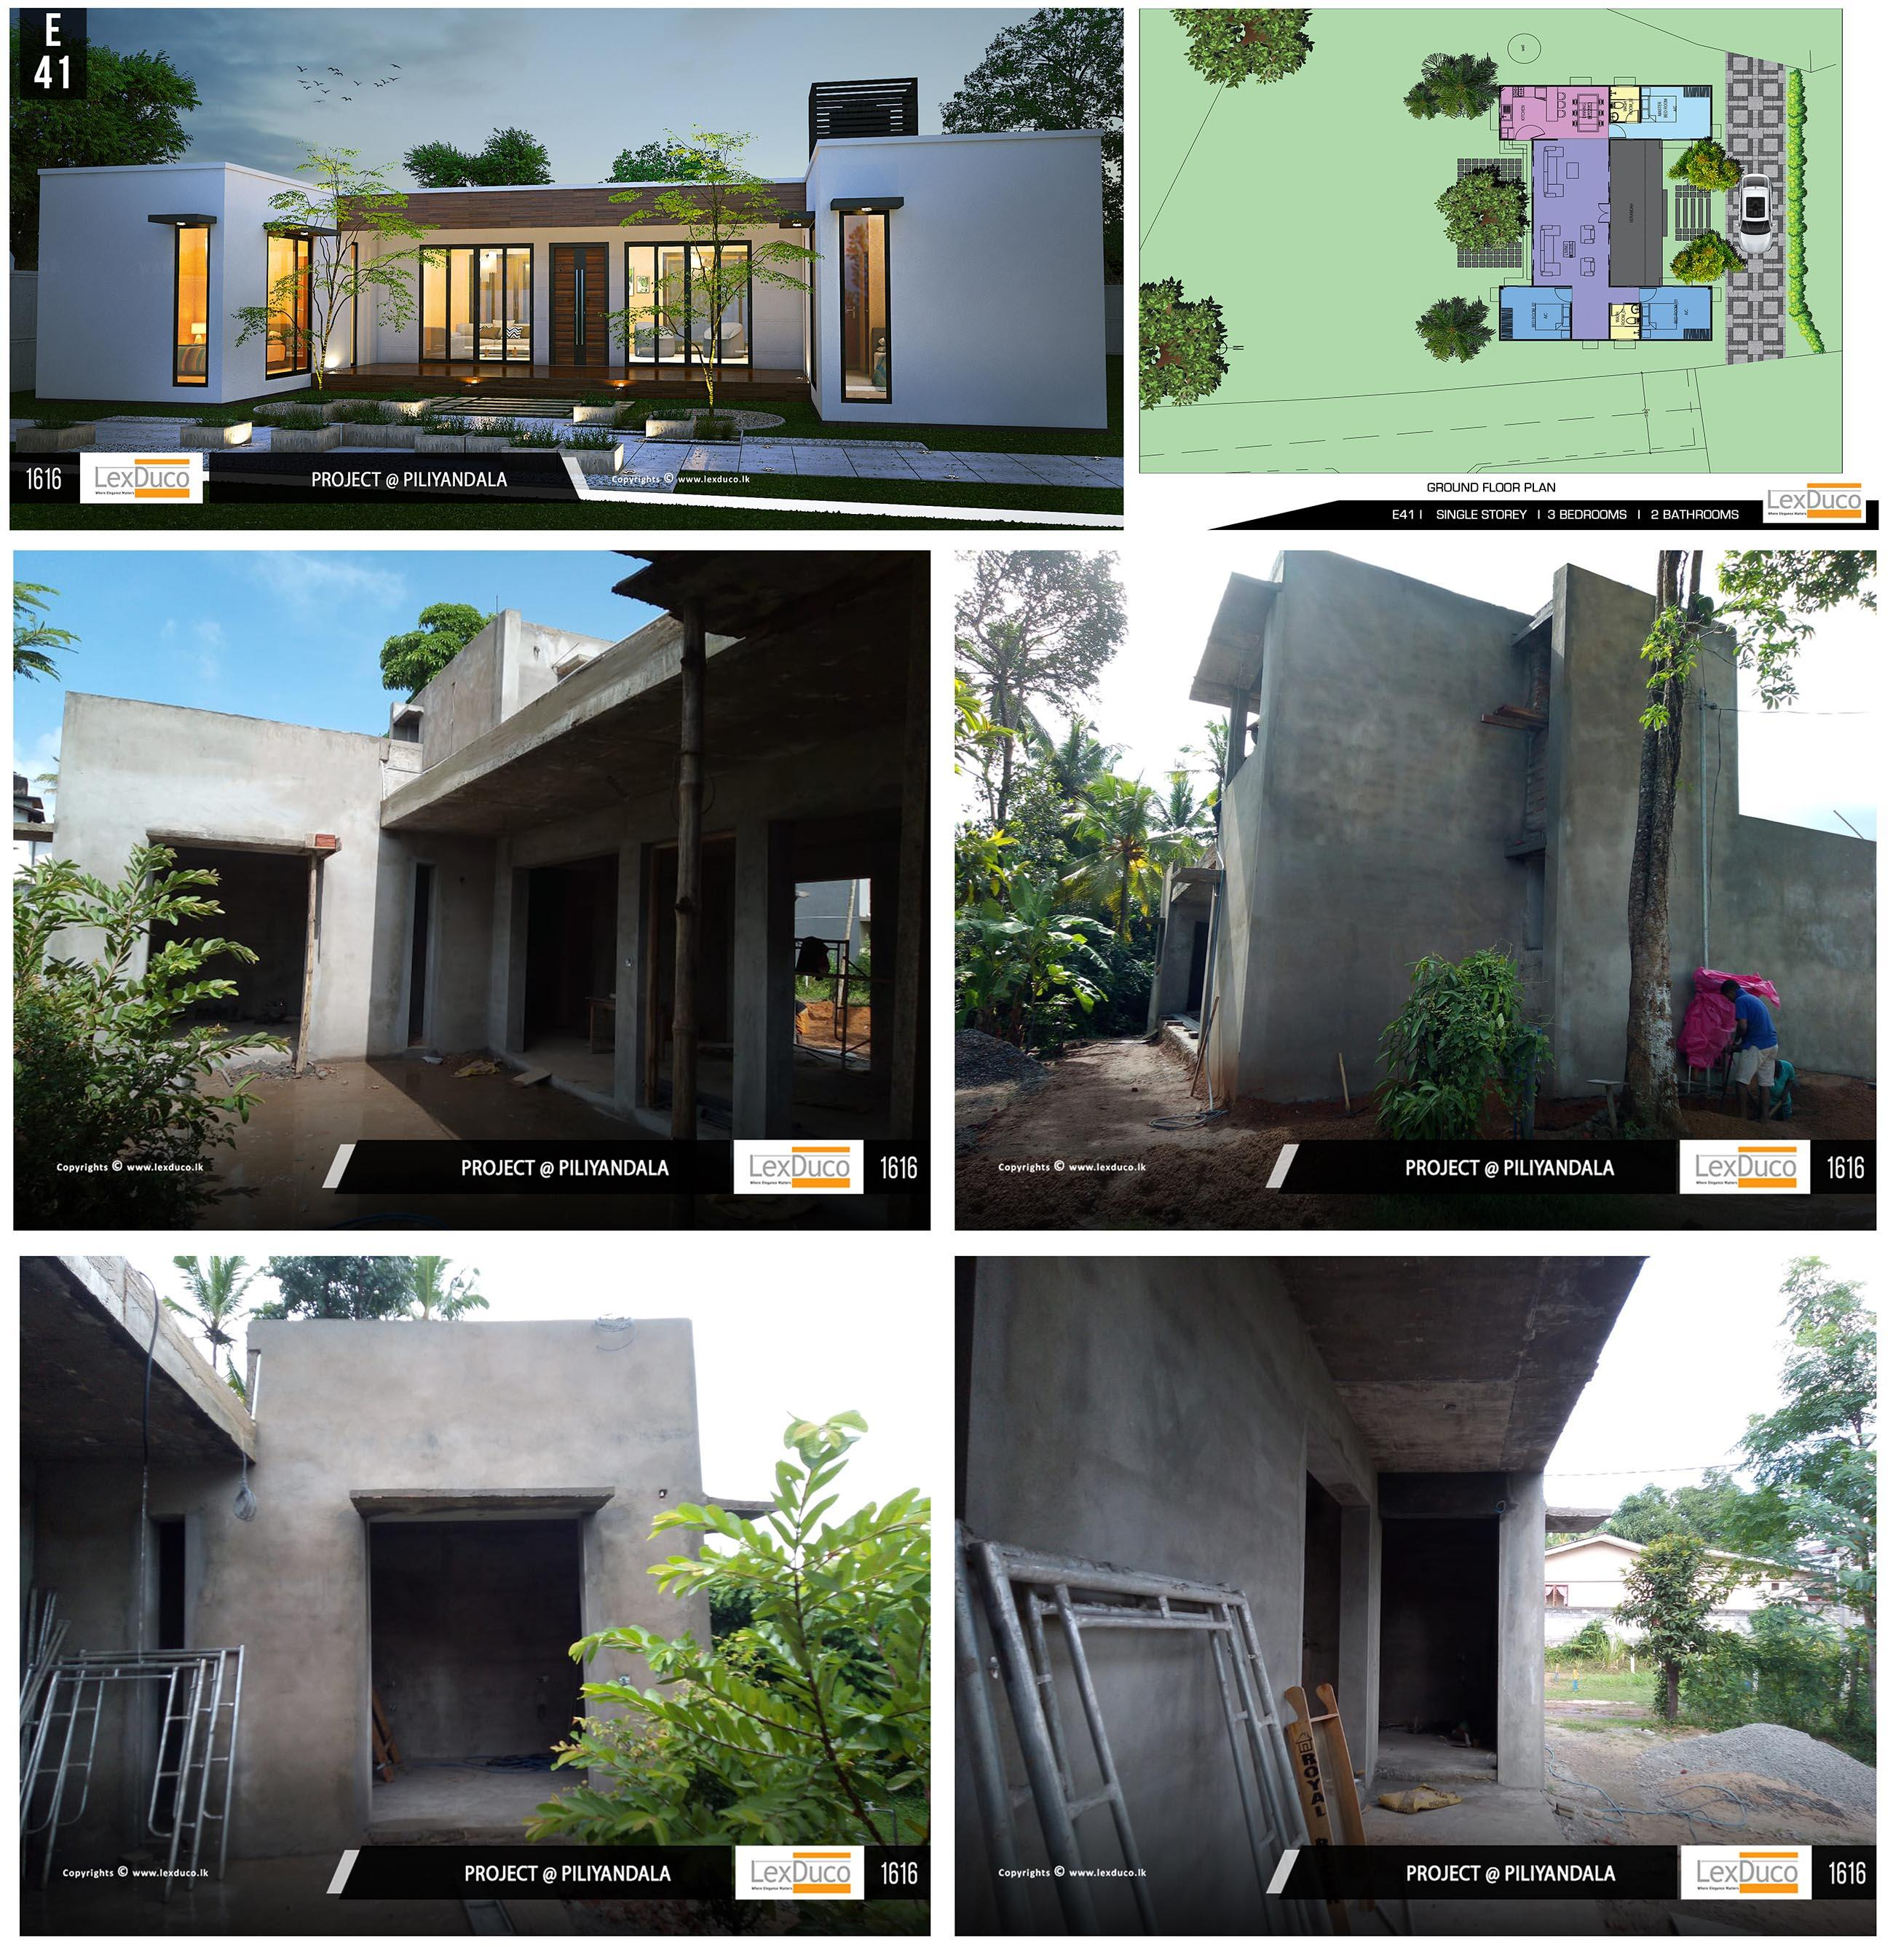 Residential Housing Project at Piliyandala   Lex Duco